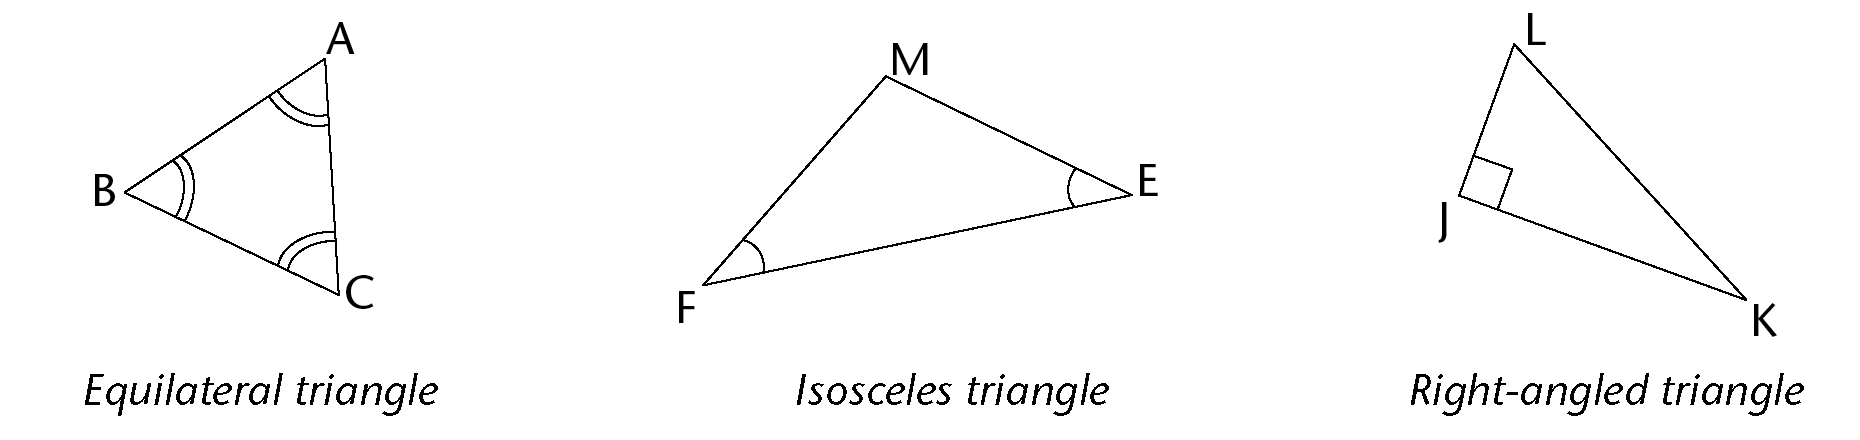 hight resolution of Congruency   Geometry of shapes   Siyavula